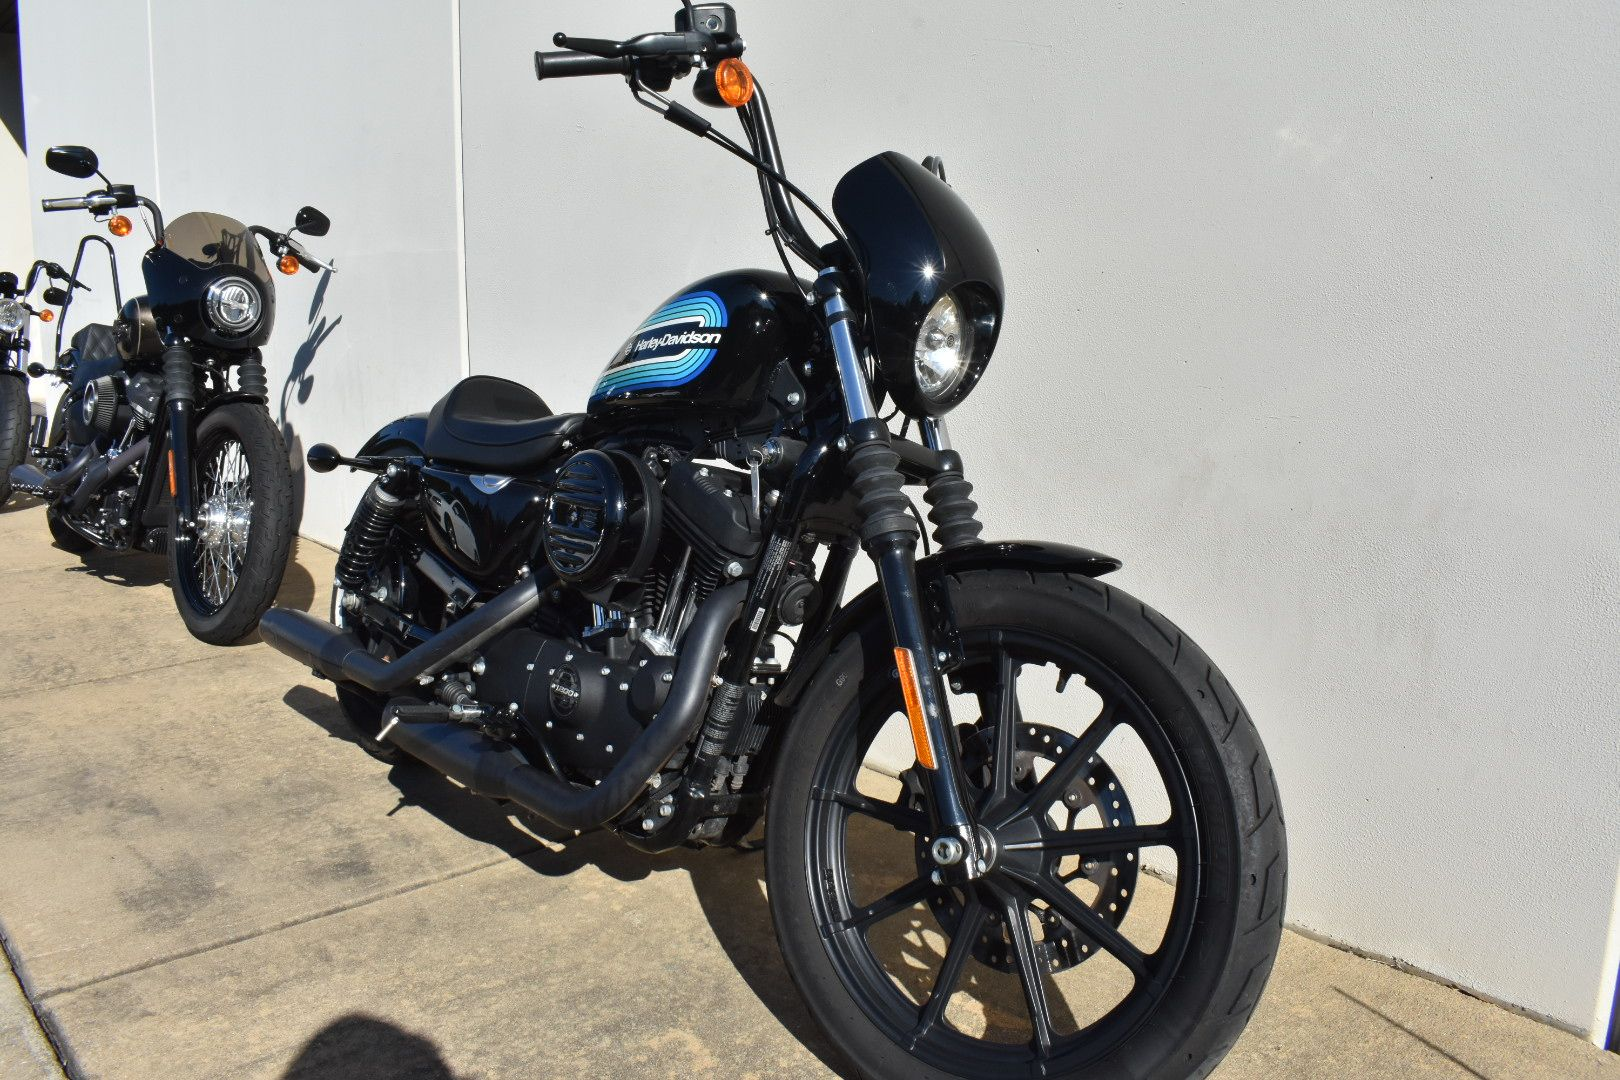 Certified Pre-Owned 2019 Harley-Davidson Iron 1200 XL1200NS